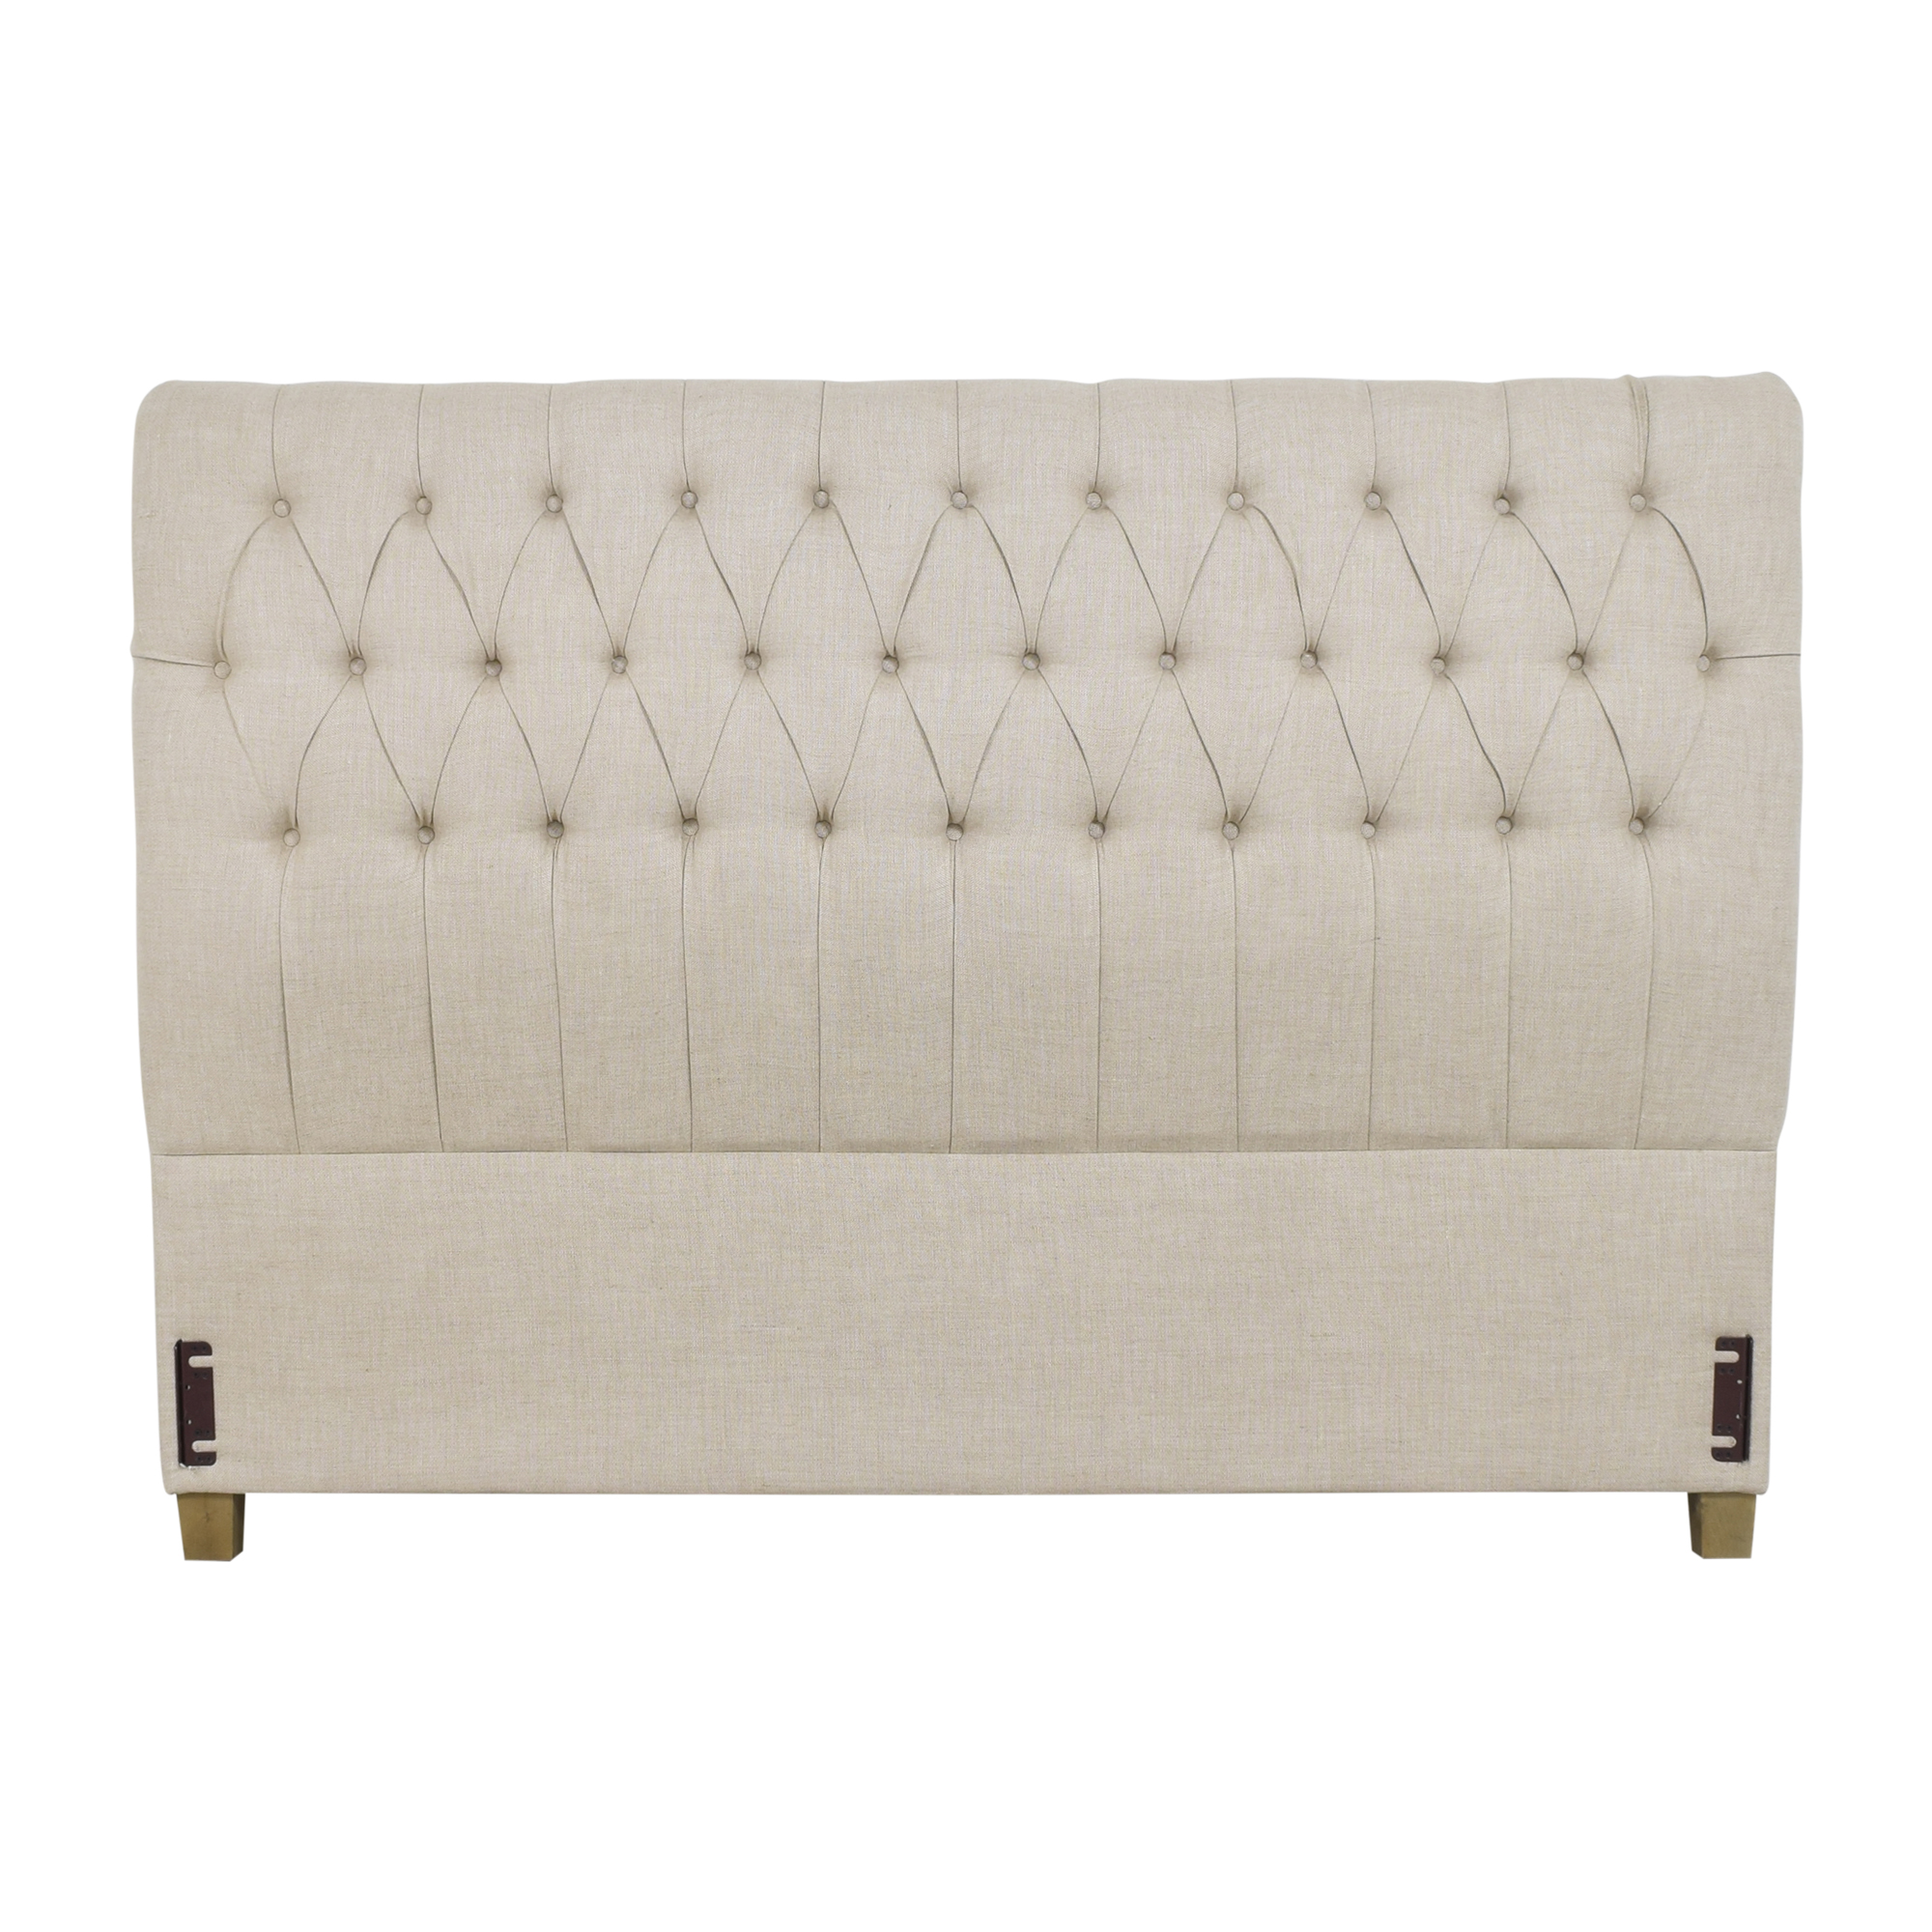 buy Restoration Hardware Tufted King Headboard Restoration Hardware